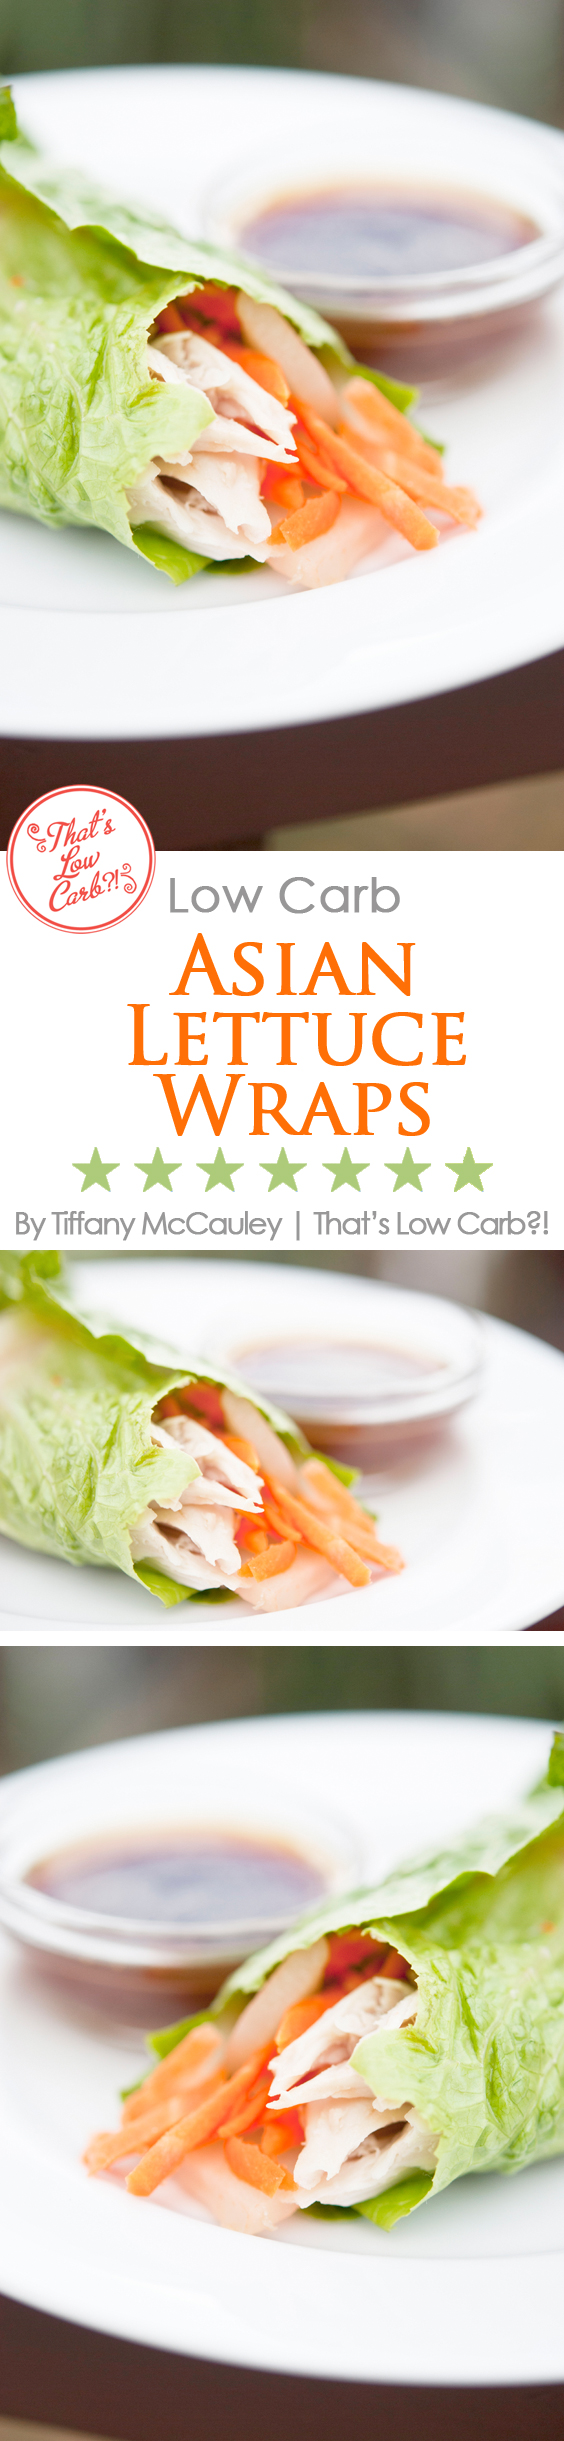 Low Carb Asian Style Lettuce Wraps Recipe pinnable graphic.